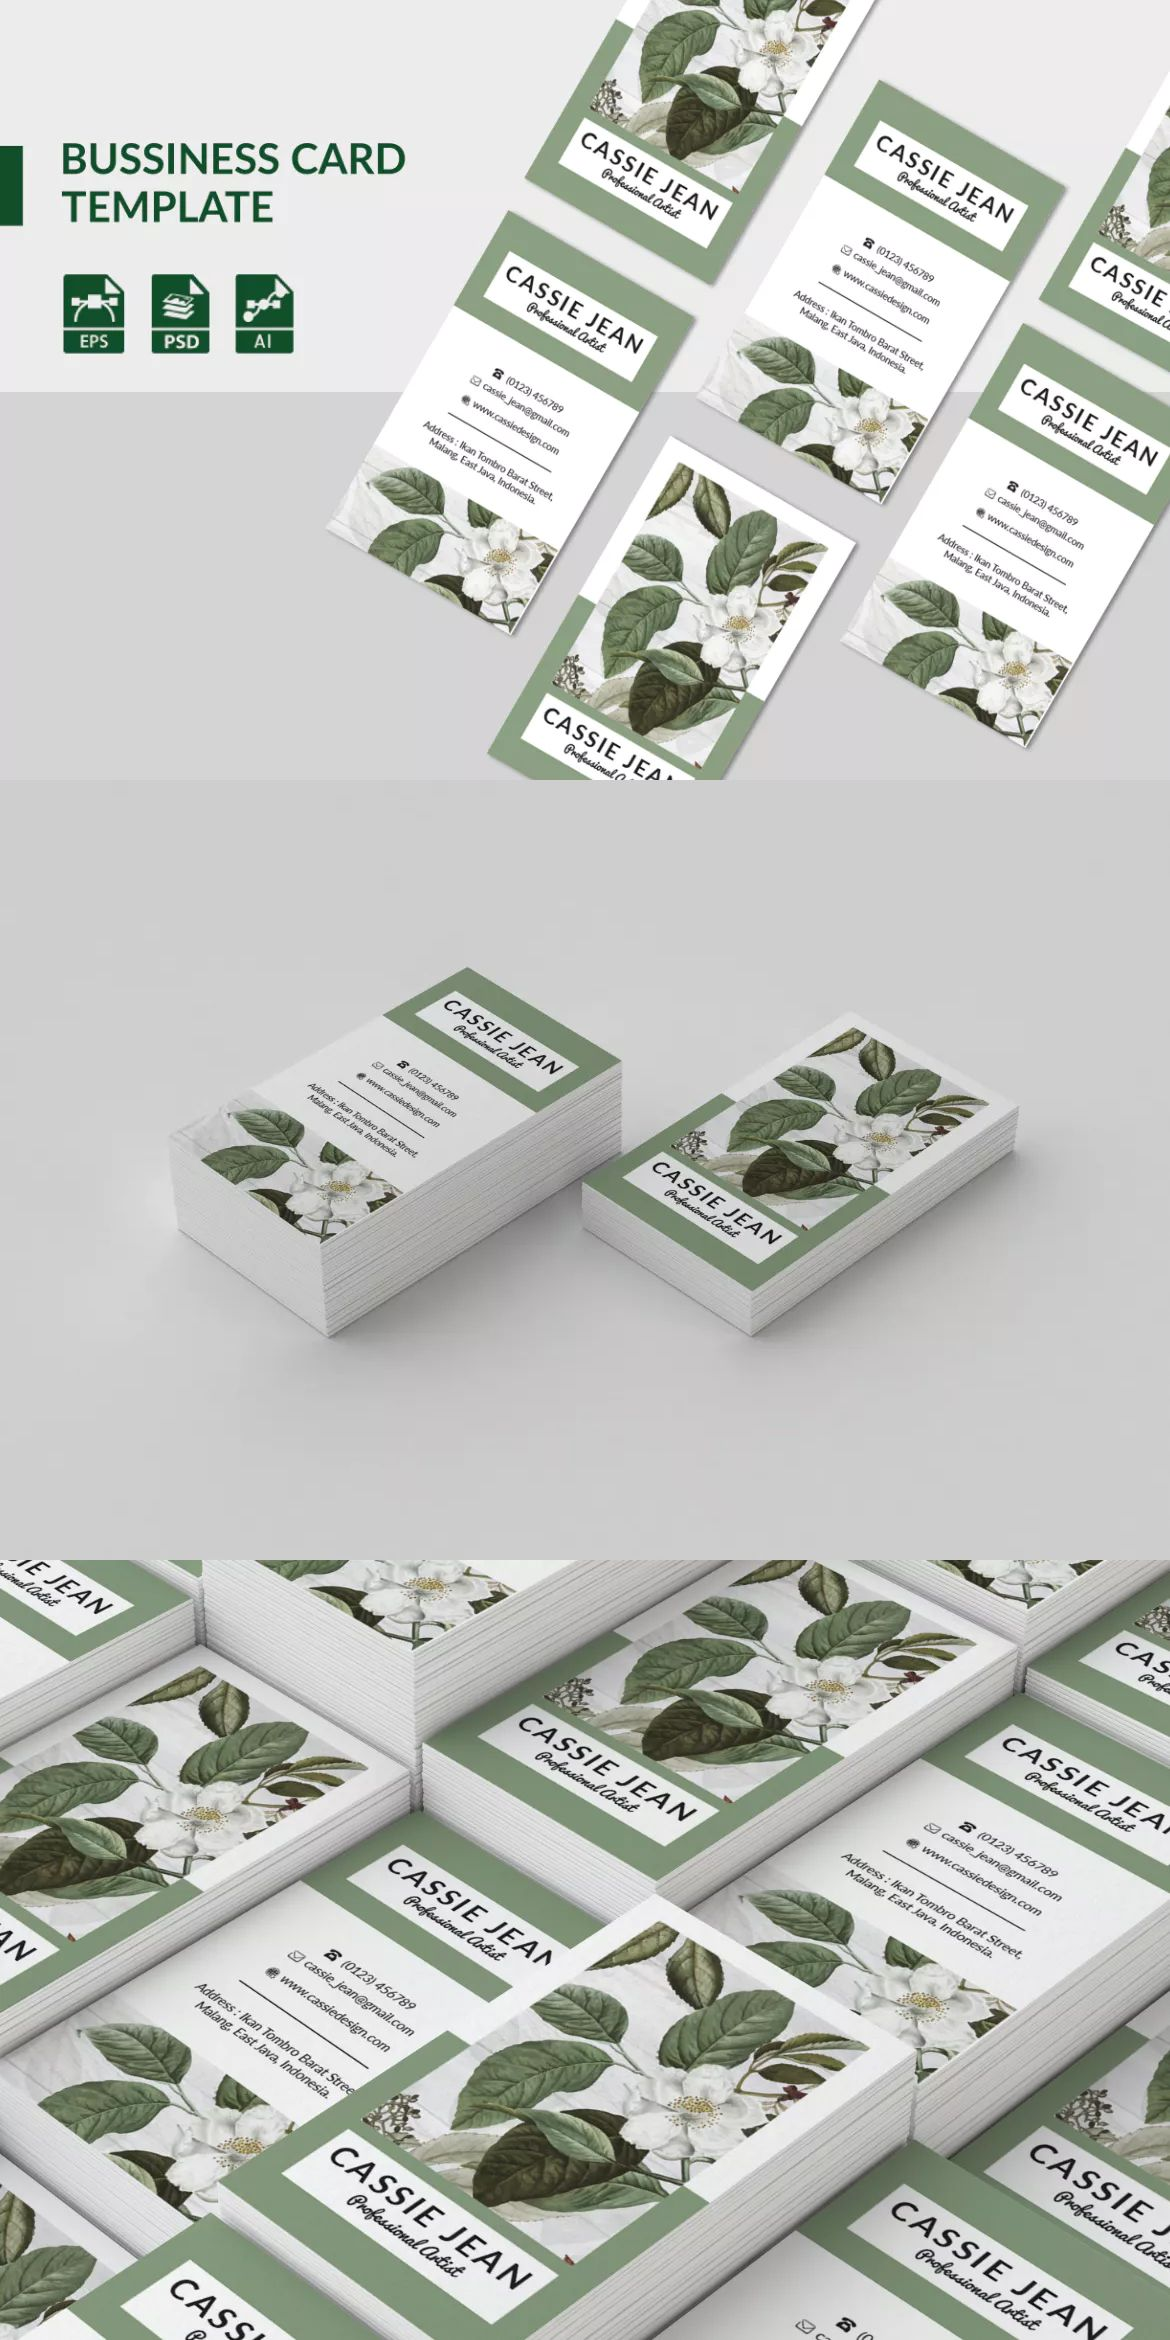 Business Card By Yip87 On Envato Elements Download Business Card Business Card Template Business Card Graphic